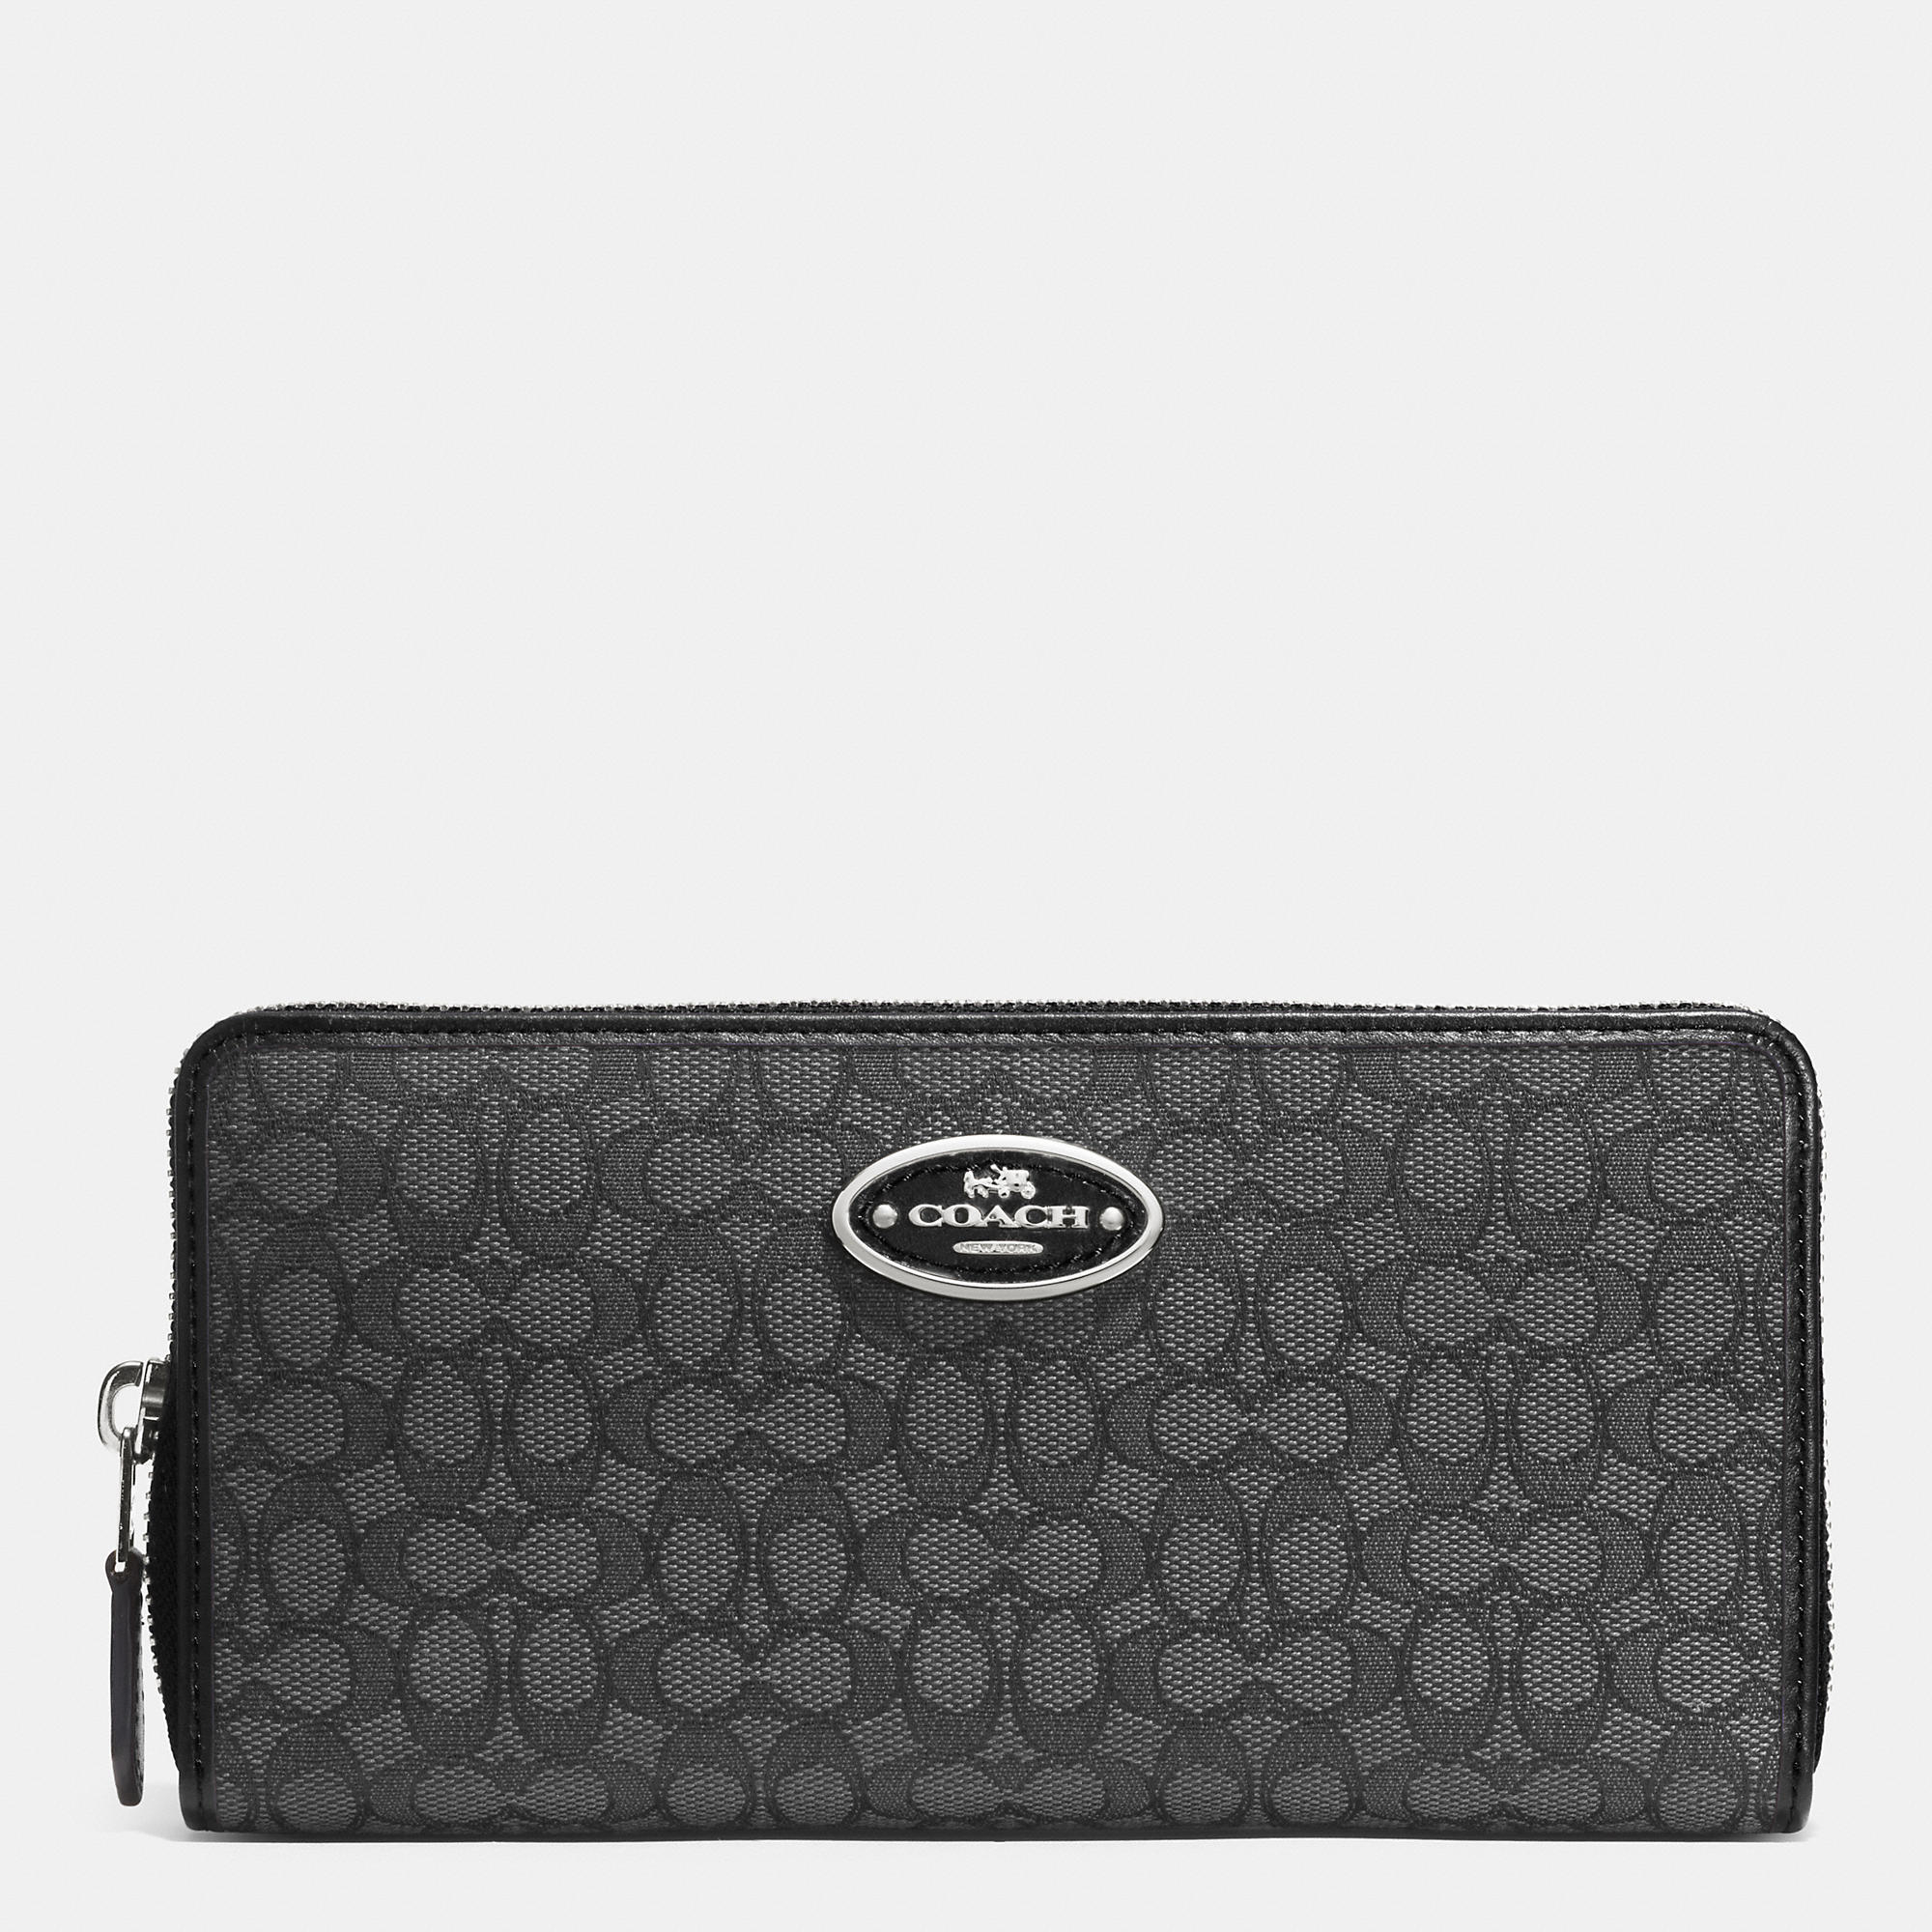 Lyst Coach Accordion Zip Wallet In Signature Jacquard In